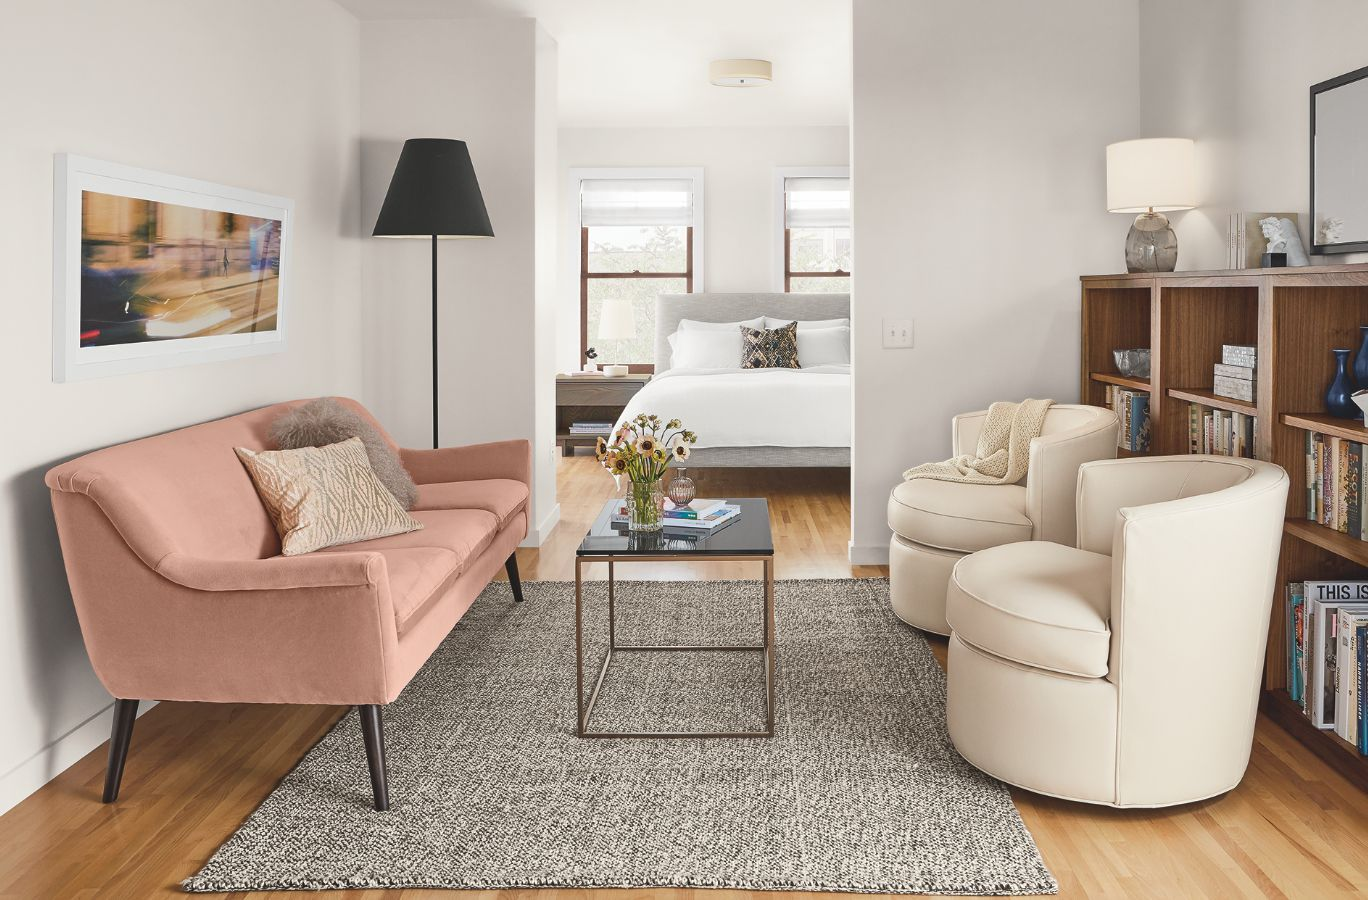 Open Space No Coffee Table Marble Table Between Chairs End Tables Beside Sofa Modern Bedroom Furniture Modern Furniture Living Room Modern Kids Furniture